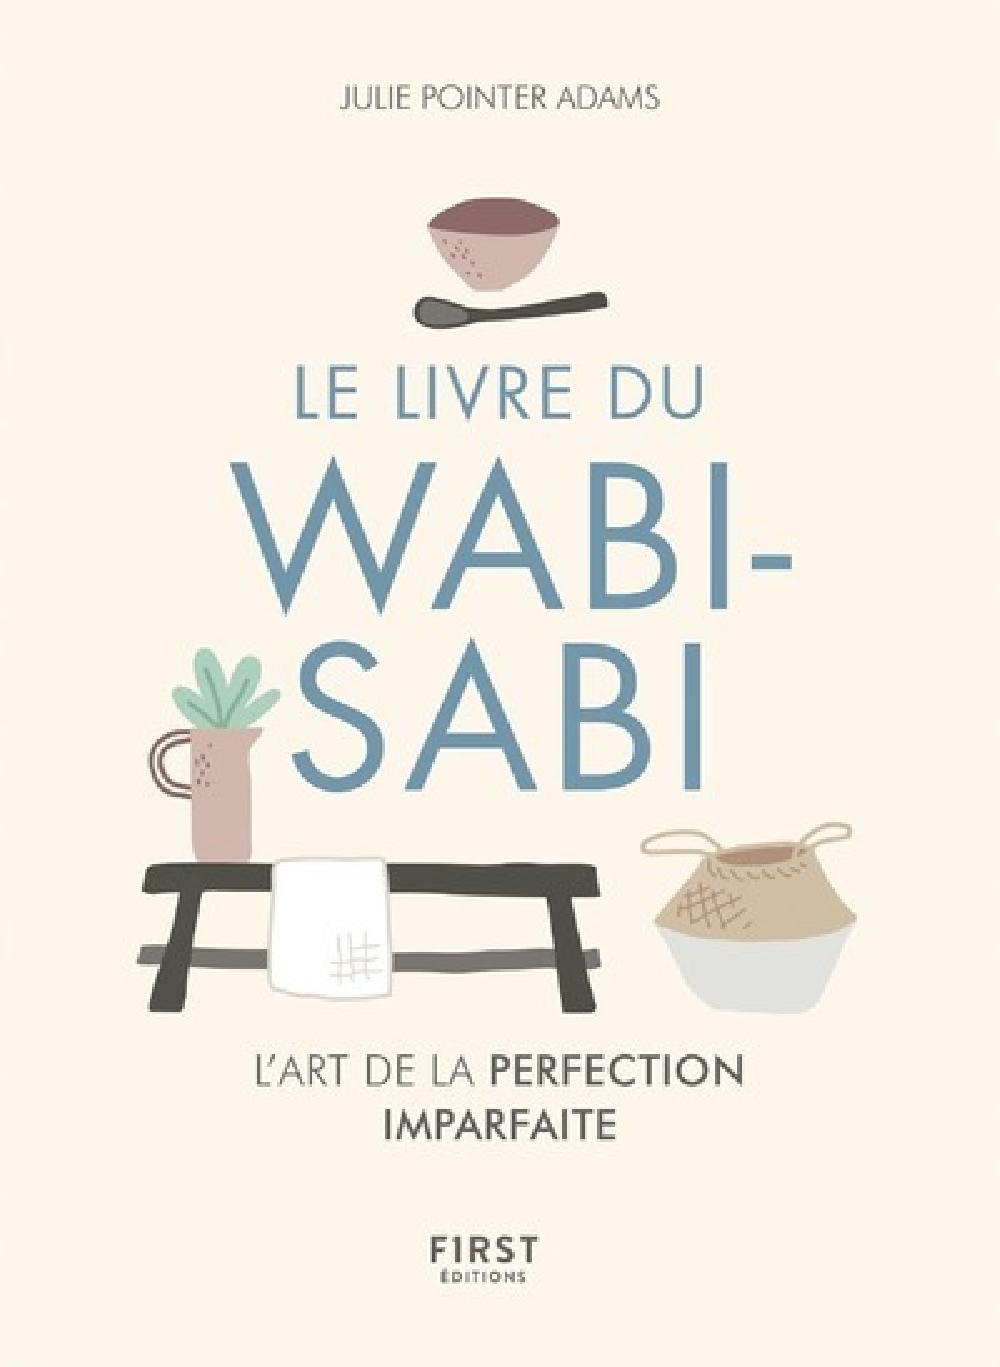 Wabi-sabi - L'art de la perfection imparfaite